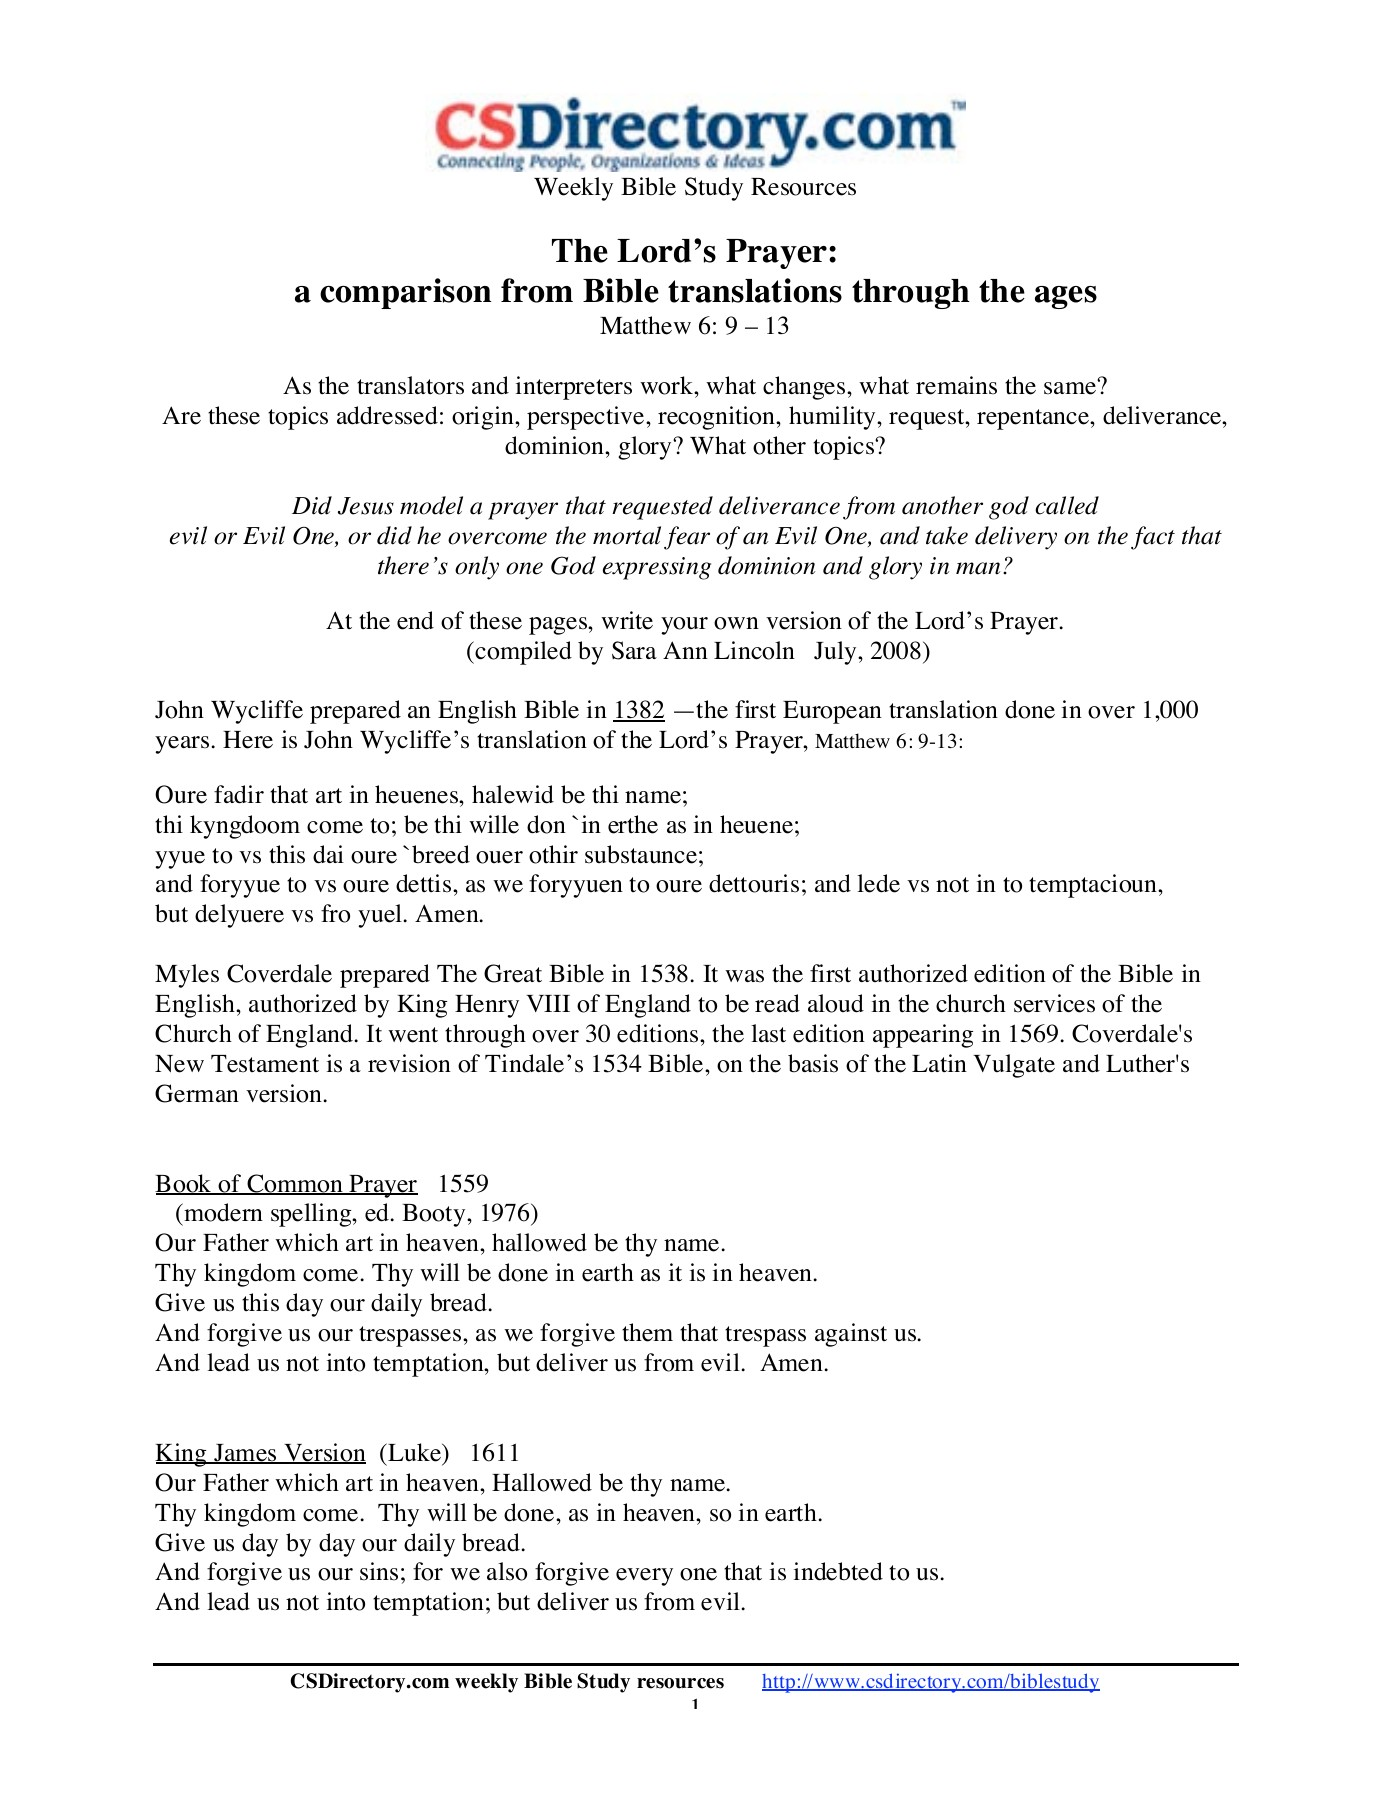 The Lord's Prayer: a comparison from Bible translations     Pages 1